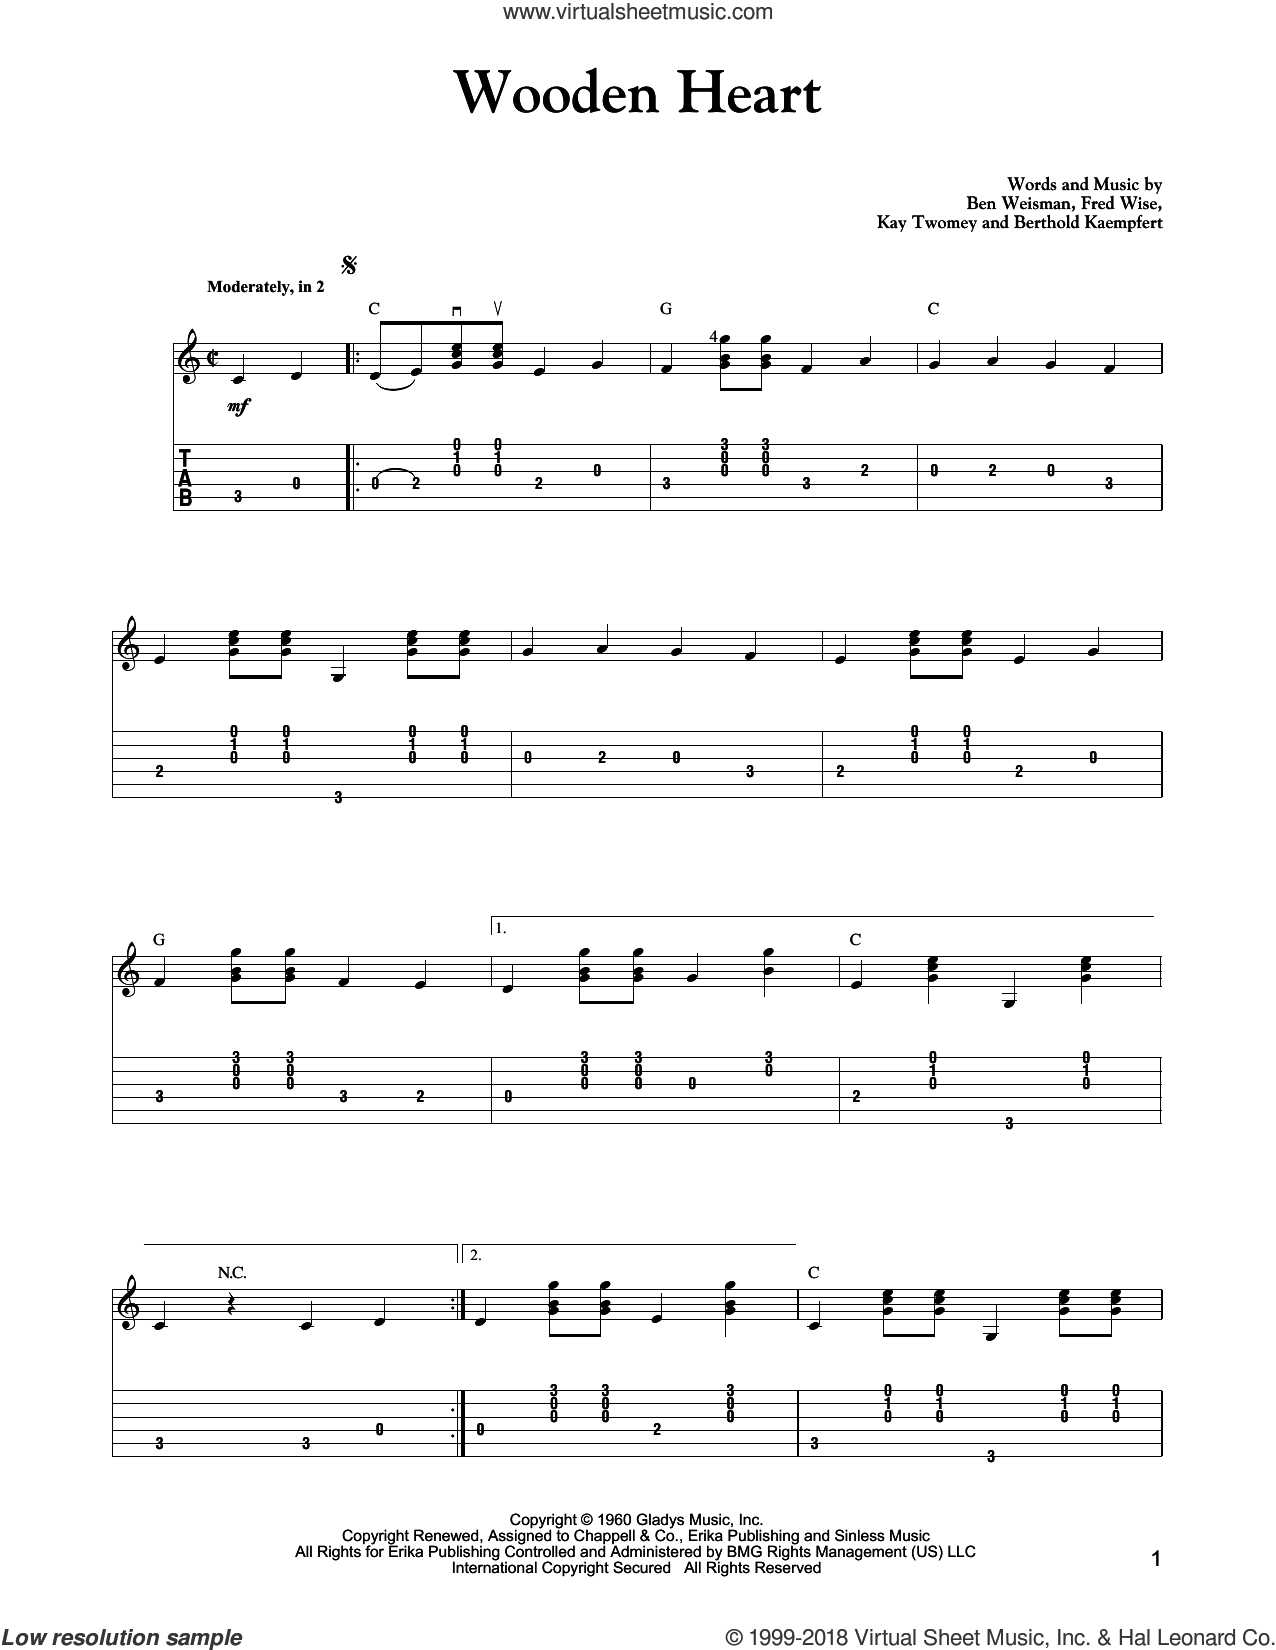 Wooden Heart sheet music for guitar solo by Carter Style Guitar, Mark Phillips, Elvis Presley and Fred Wise, intermediate guitar. Score Image Preview.